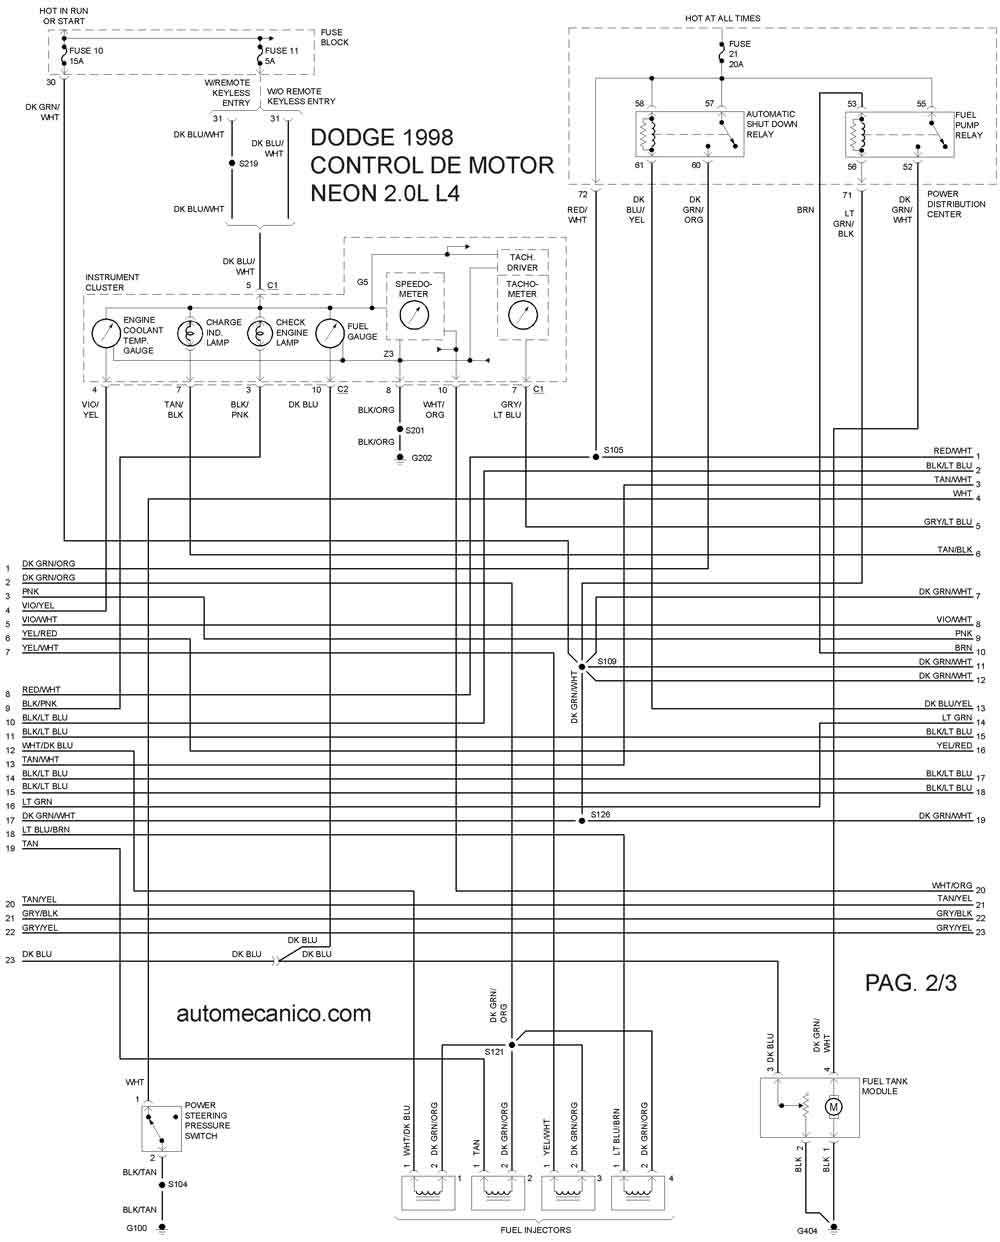 2003 Chevy 1500 Radio Wiring Diagram Daily Update Snowdogg Harness 2006 Images Gallery